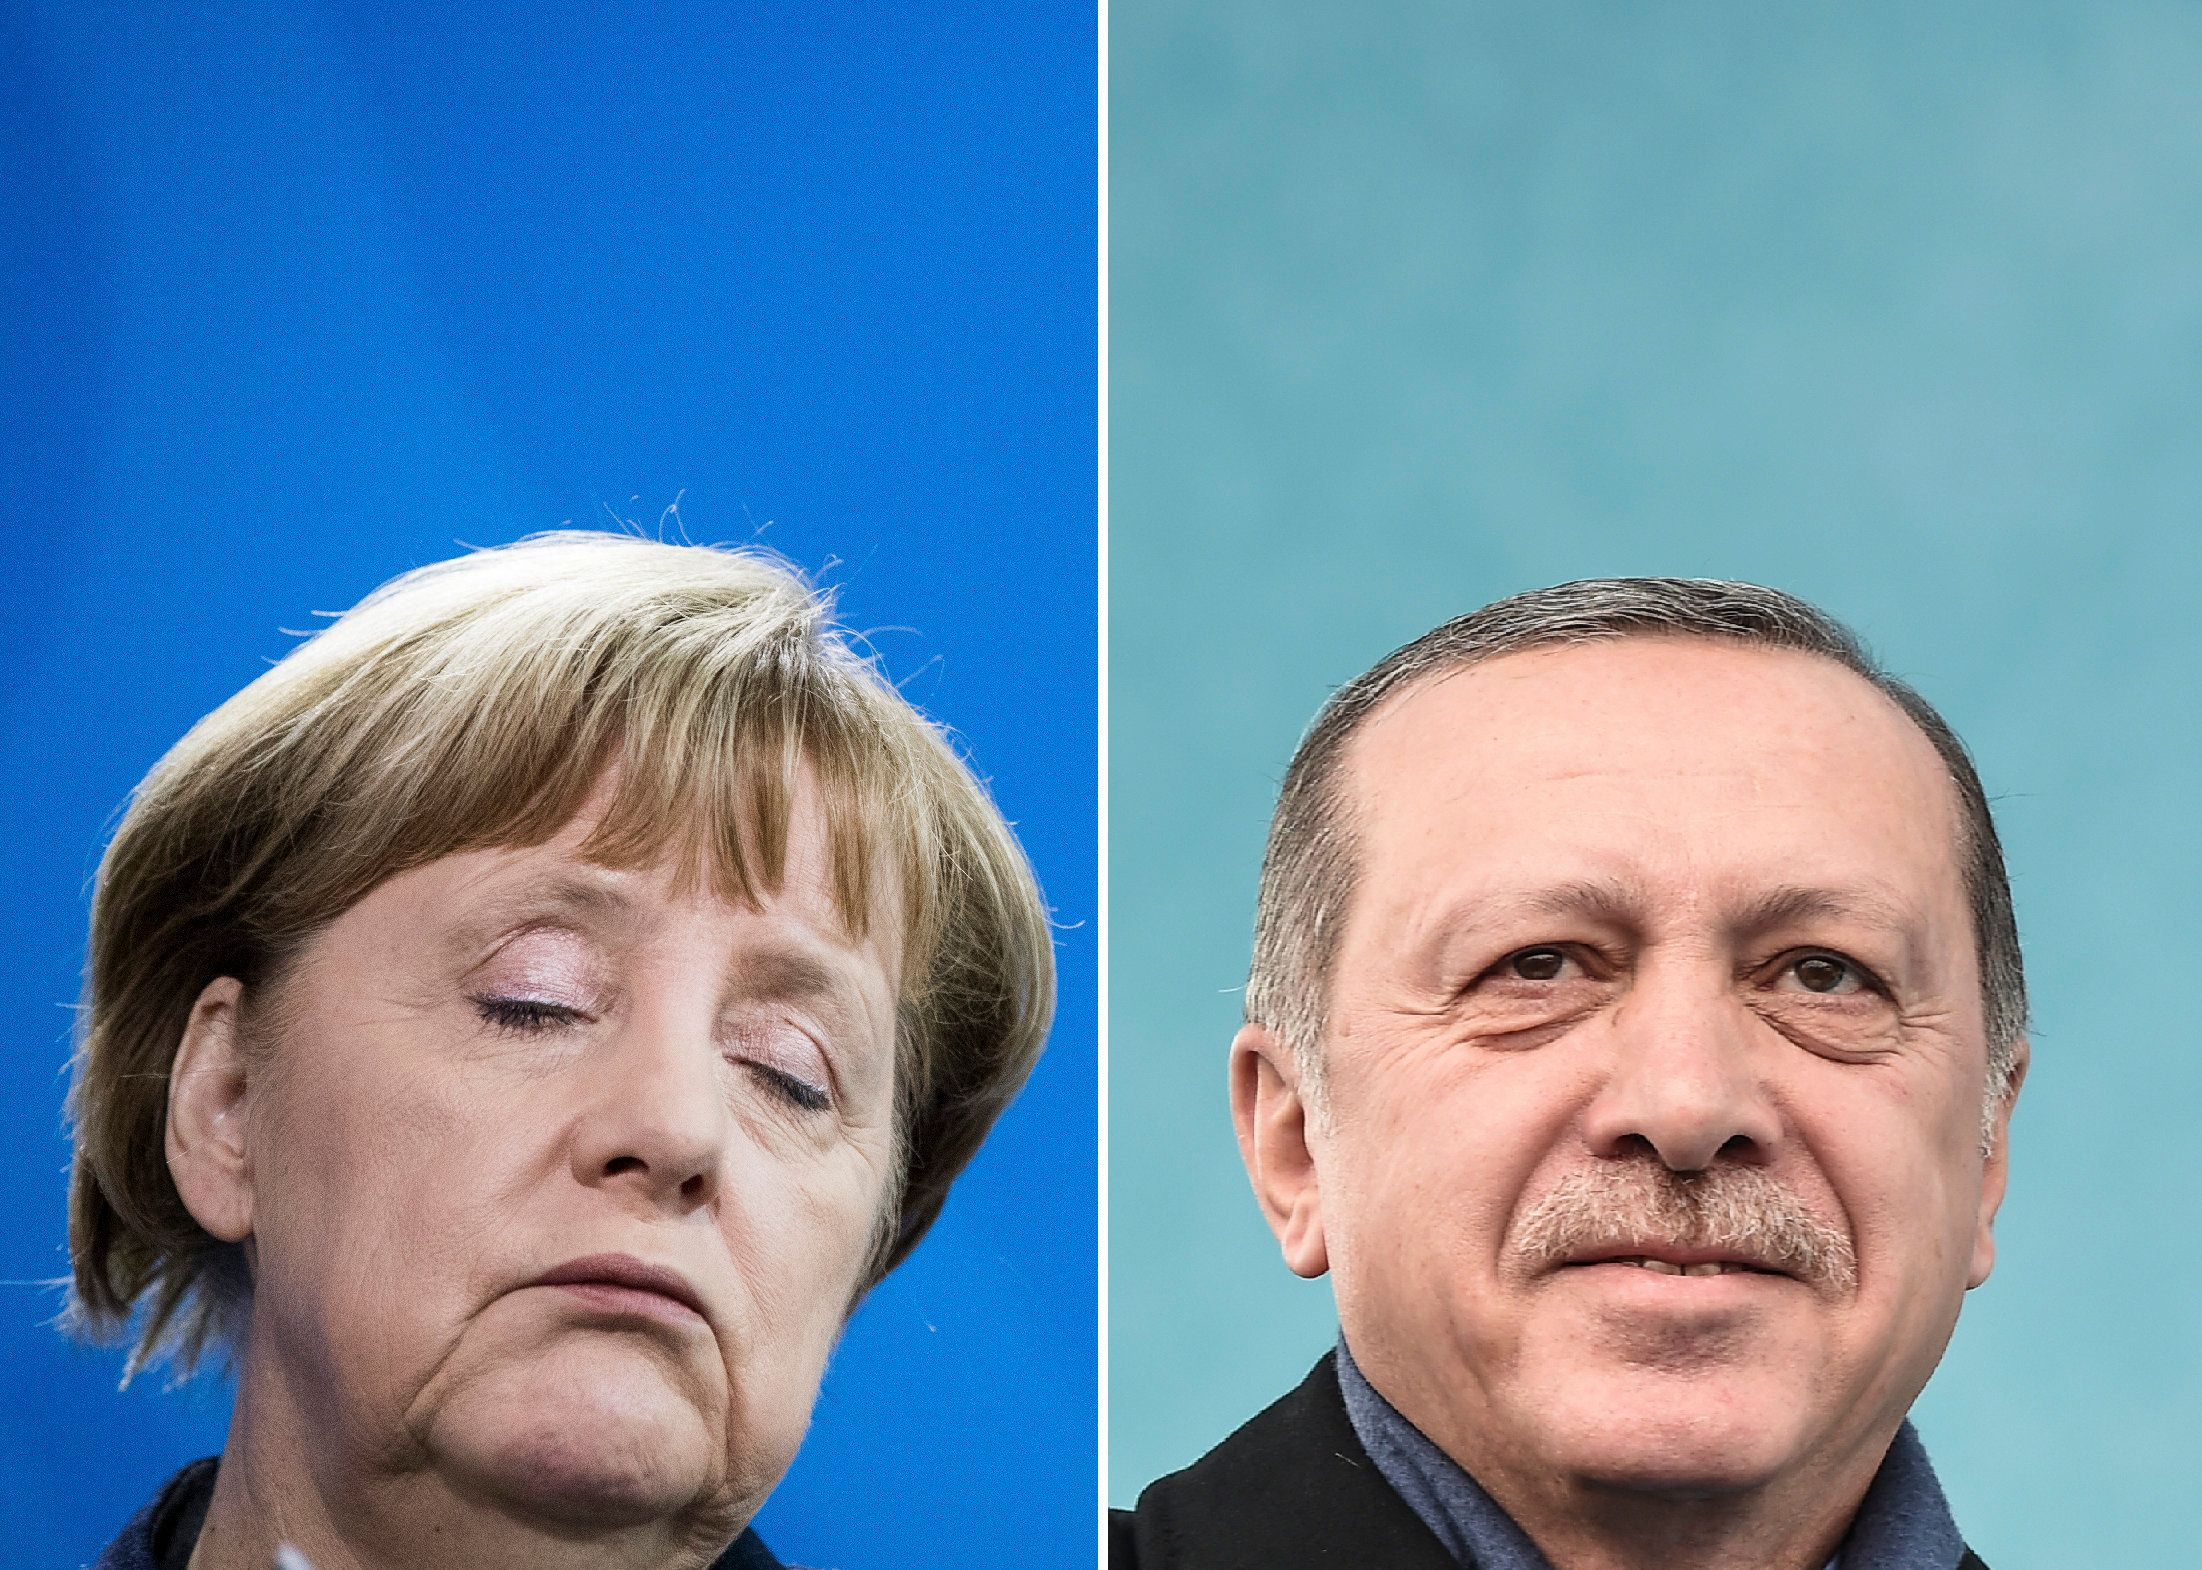 (COMBO) This combination of file pictures created on March 14, 2017 shows German Chancellor Angela Merkel (February 23, 2017 in Berlin) and Turkish President Recep Tayyip Erdogan (March 11, 2017 in Istanbul). German Chancellor Angela Merkel regards accusations by Turkish President Recep Tayyip Erdogan that she supports 'terrorists' as 'clearly absurd', her spokesman Steffen Seibert said late Monday, March 13, 2017. / AFP PHOTO / Odd ANDERSEN AND Ozan KOSE        (Photo credit should read ODD ANDERSEN,OZAN KOSE/AFP/Getty Images)